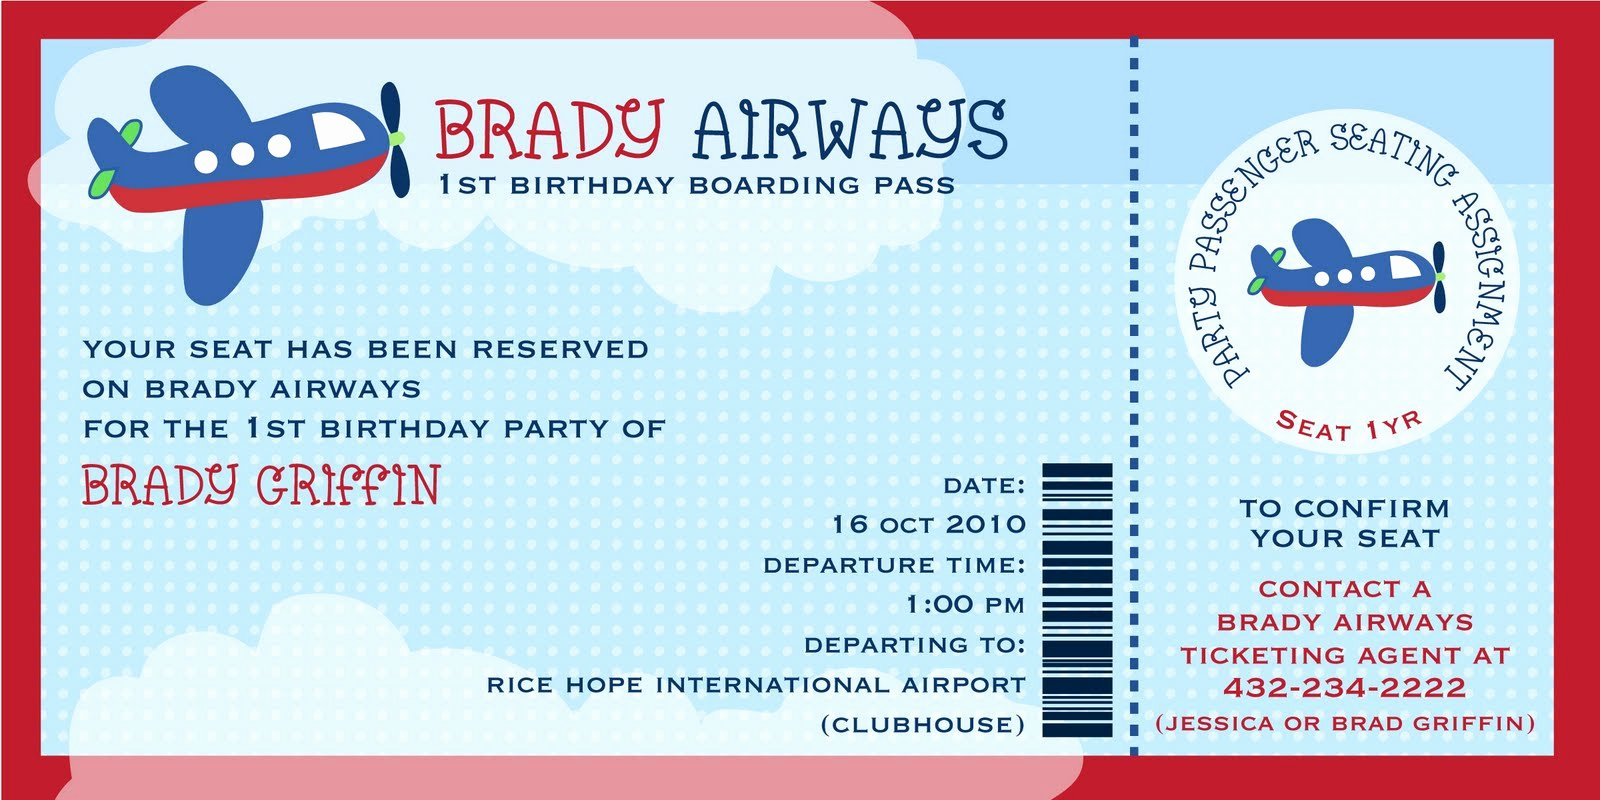 Airline Ticket Gift Certificate Template Lovely Brady S Airplane 1st Birthday Party anders Ruff Custom